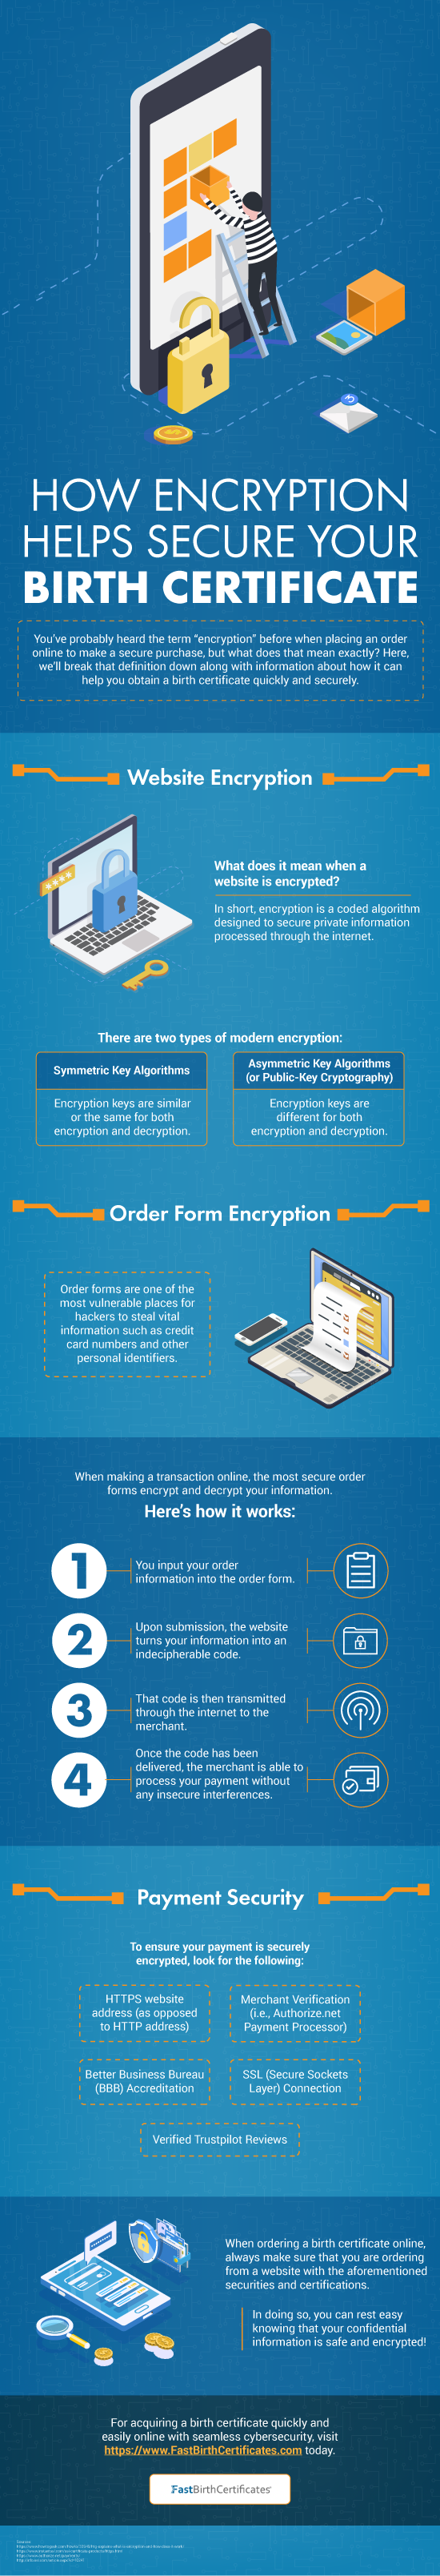 How Encryption Helps Secure Your Birth Certificate (Infographic)